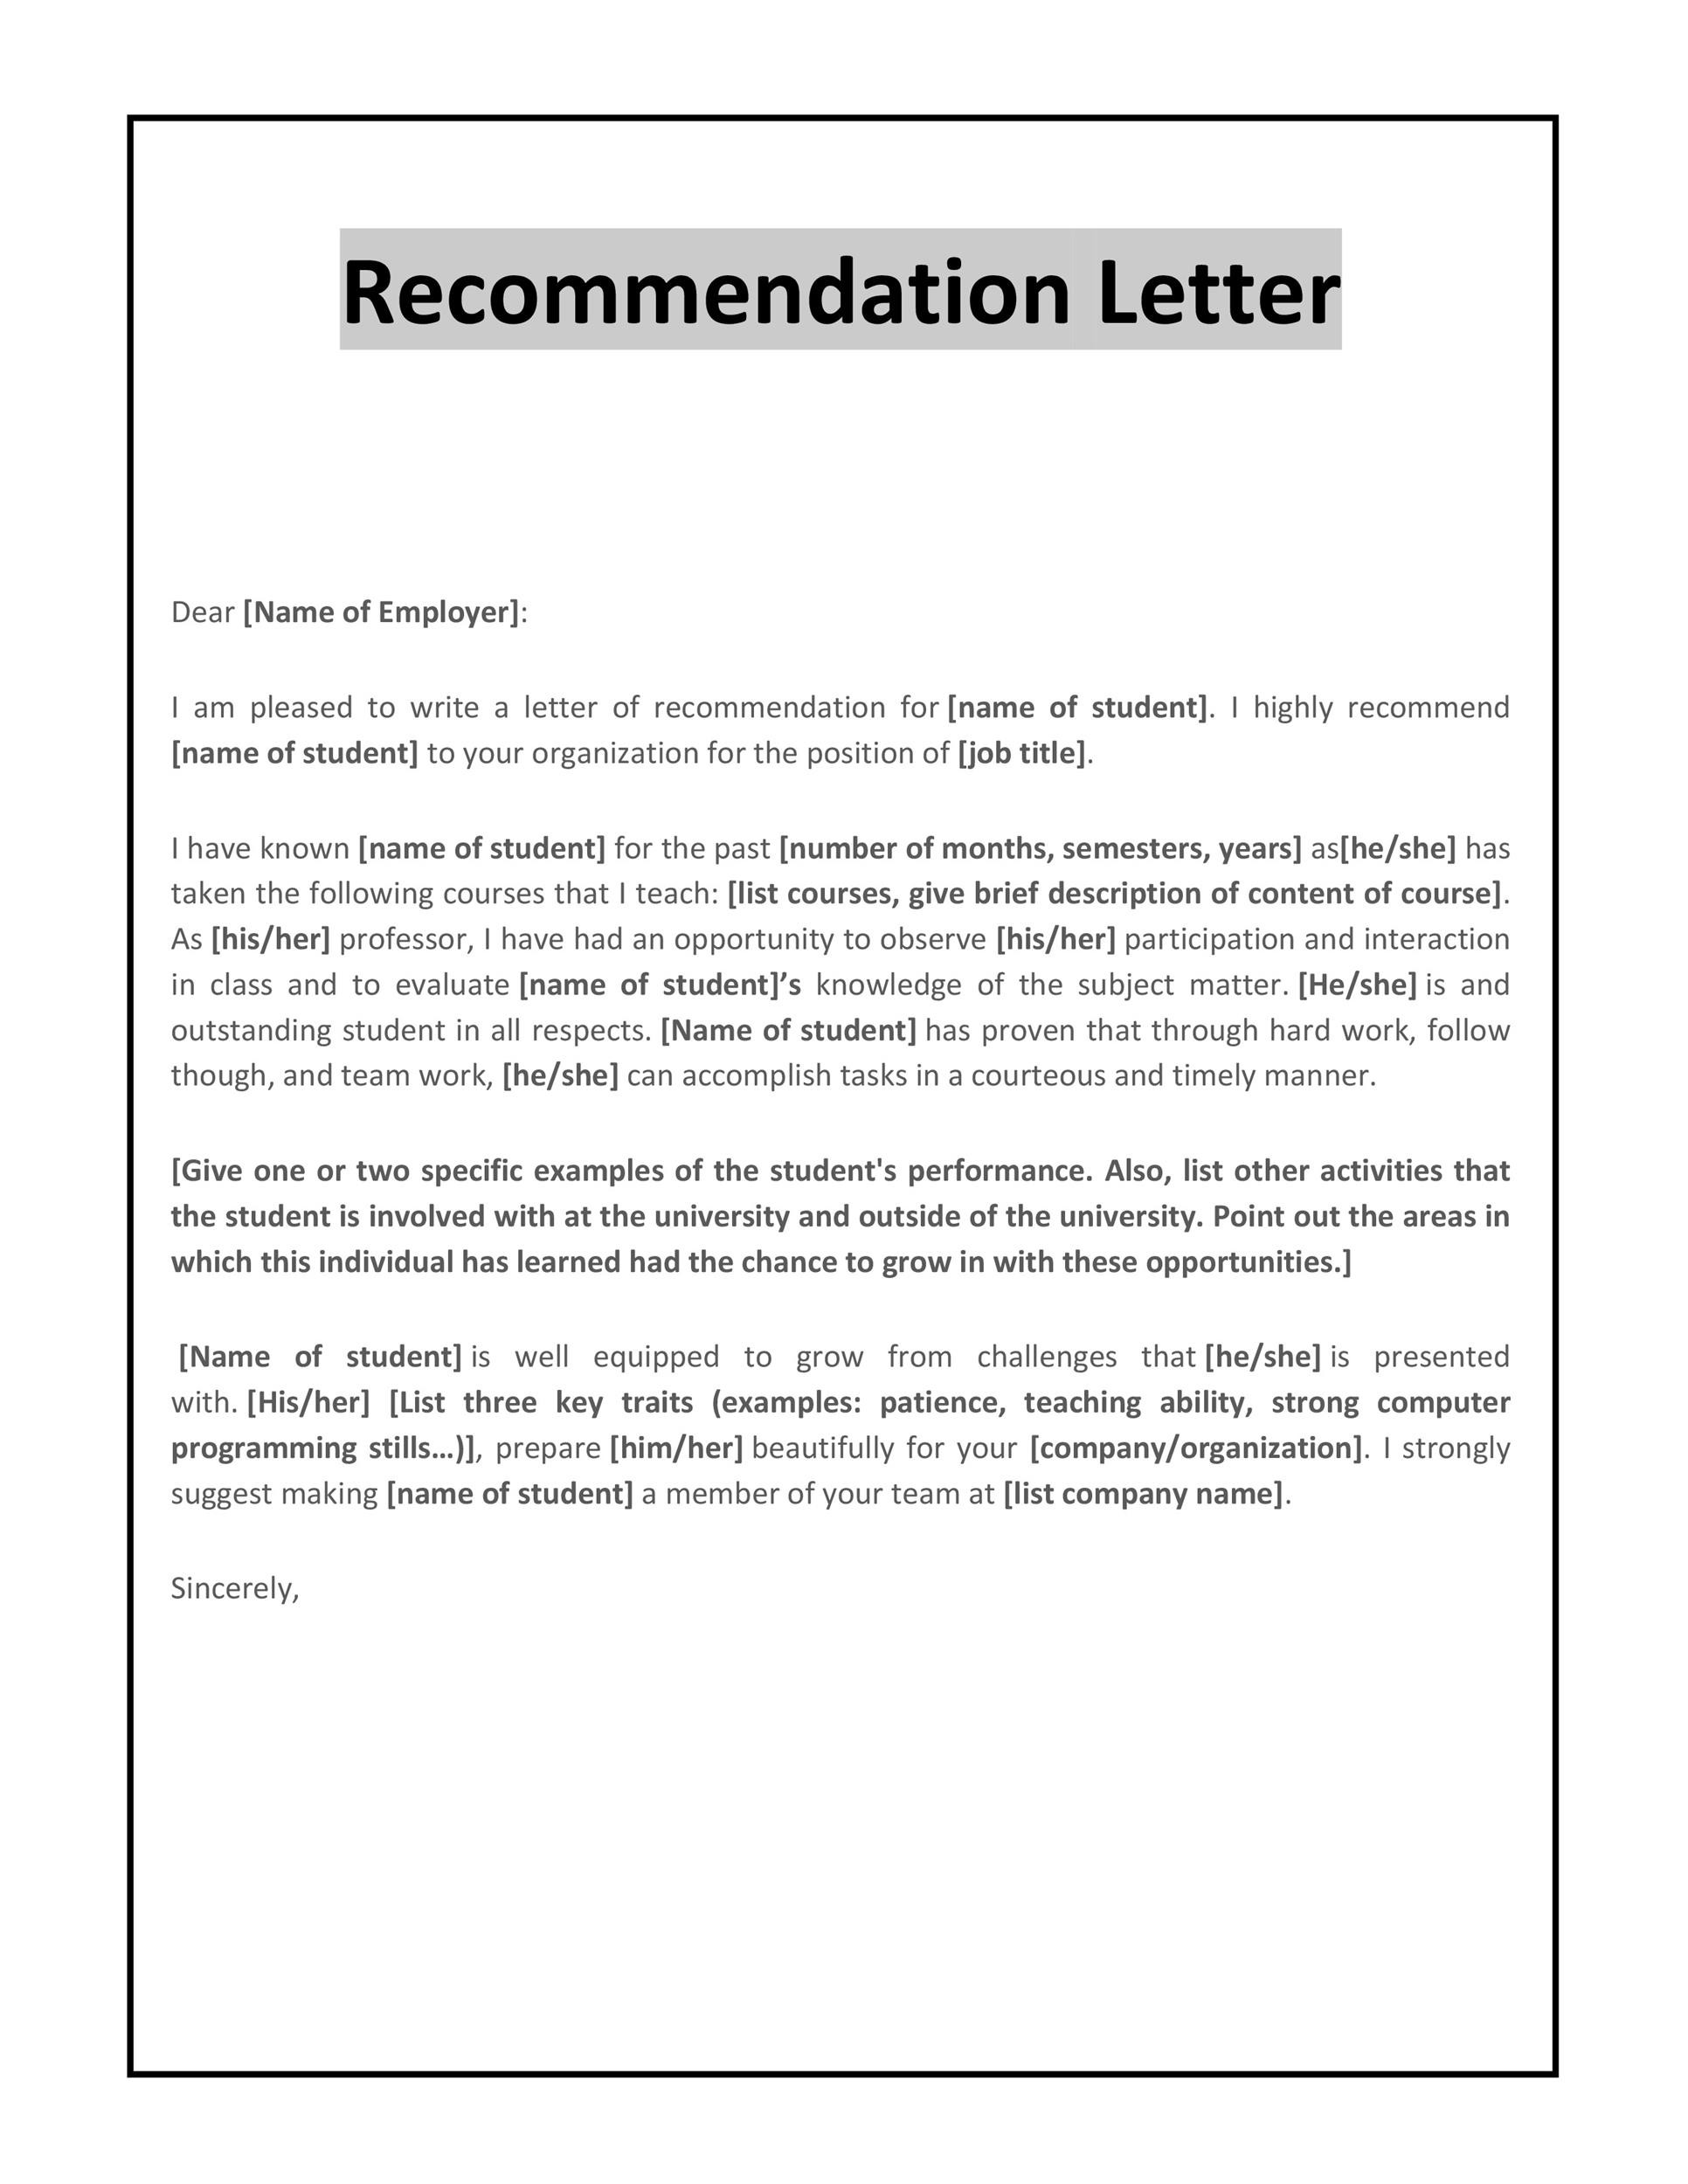 example letters of recommendation for students 43 free letter of recommendation templates amp samples 14732